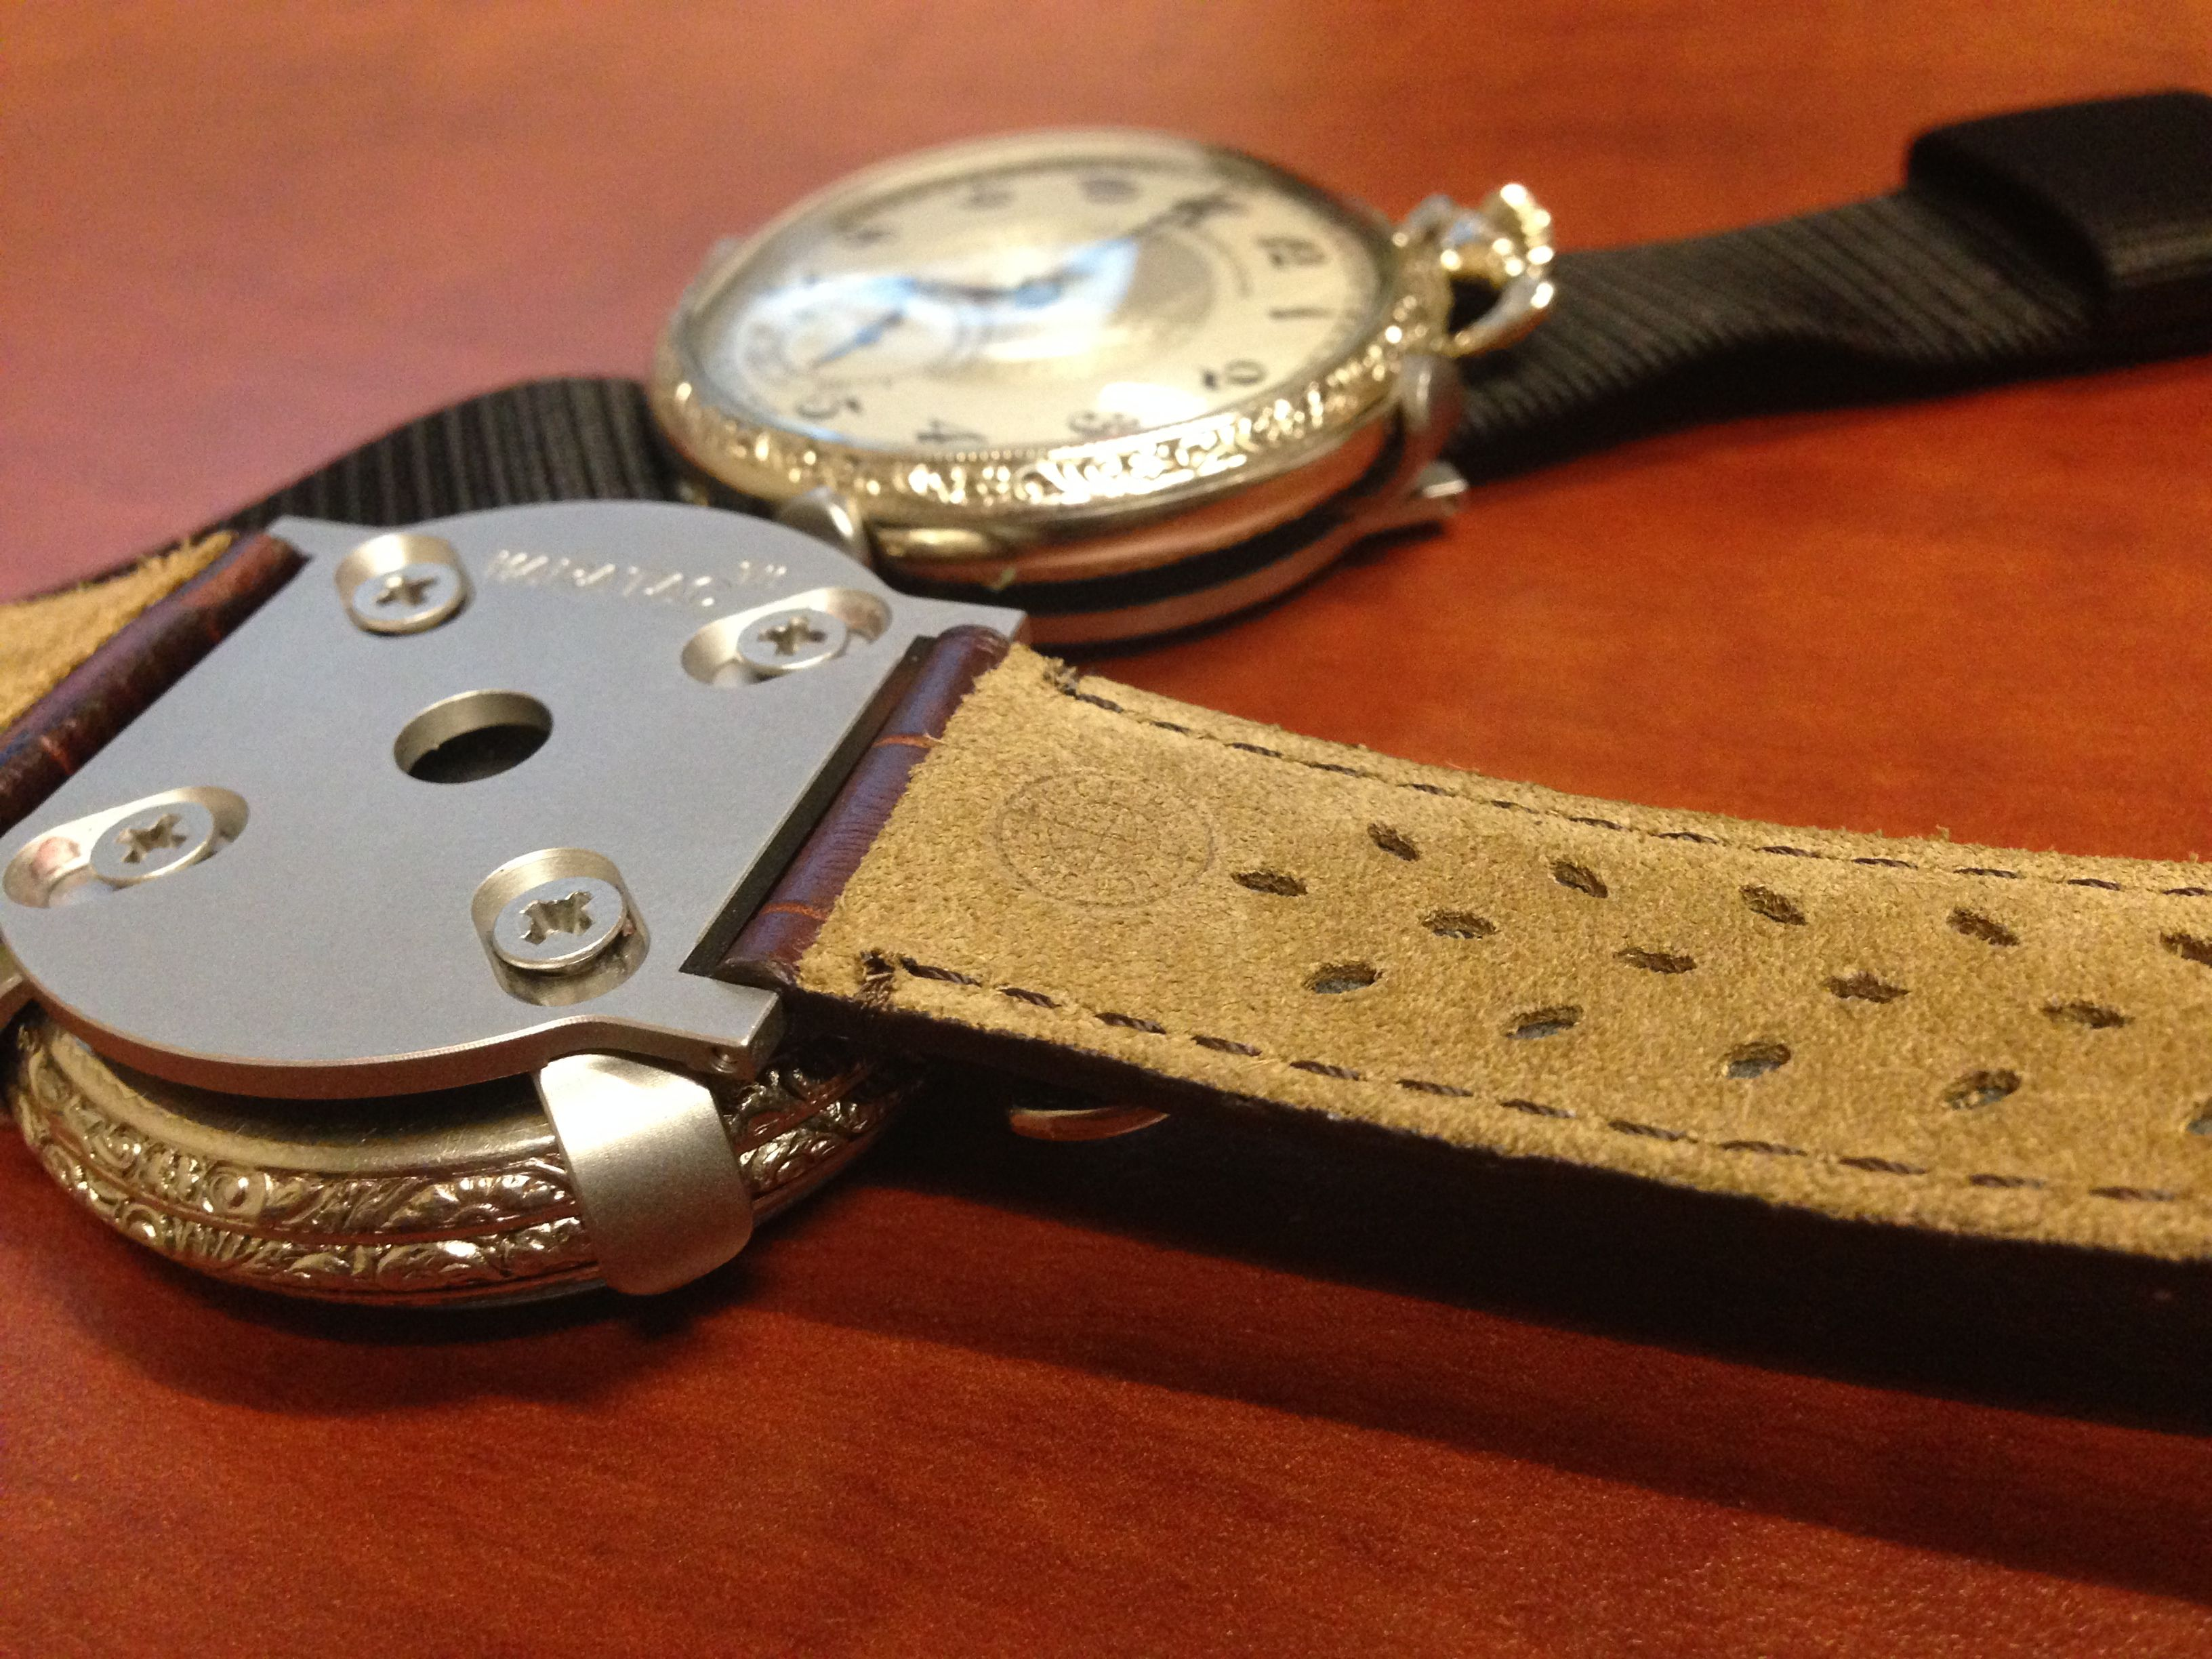 clasp review handless men for experience the sumo with seiko watches my automatic years blue